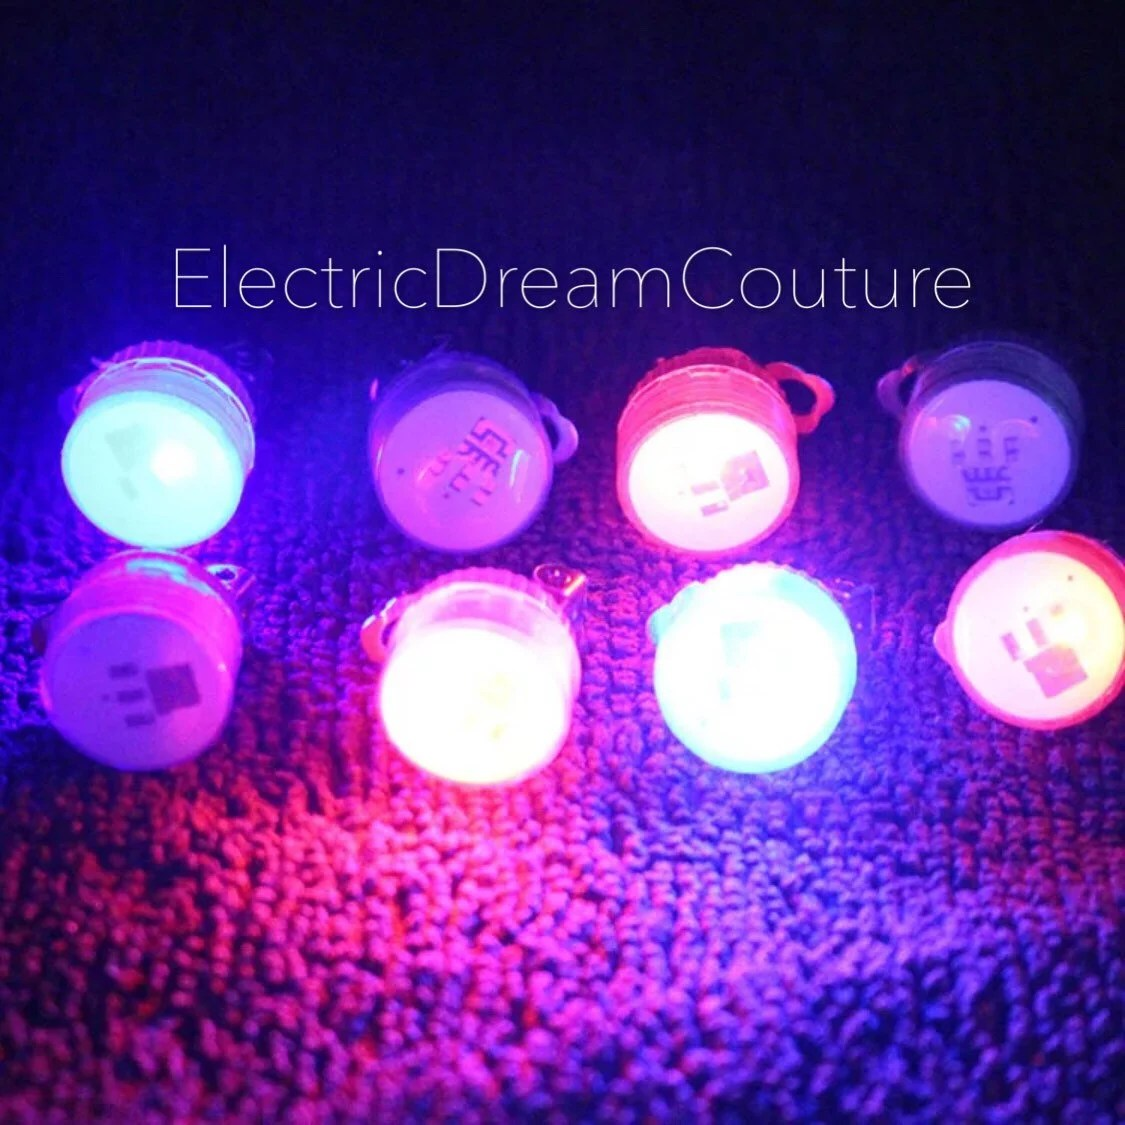 Led Earrings Led Earrings Glow Earrings Clip On Light Up Earrings For Raves Music Festivals Edc Ultra Clubbing Parties